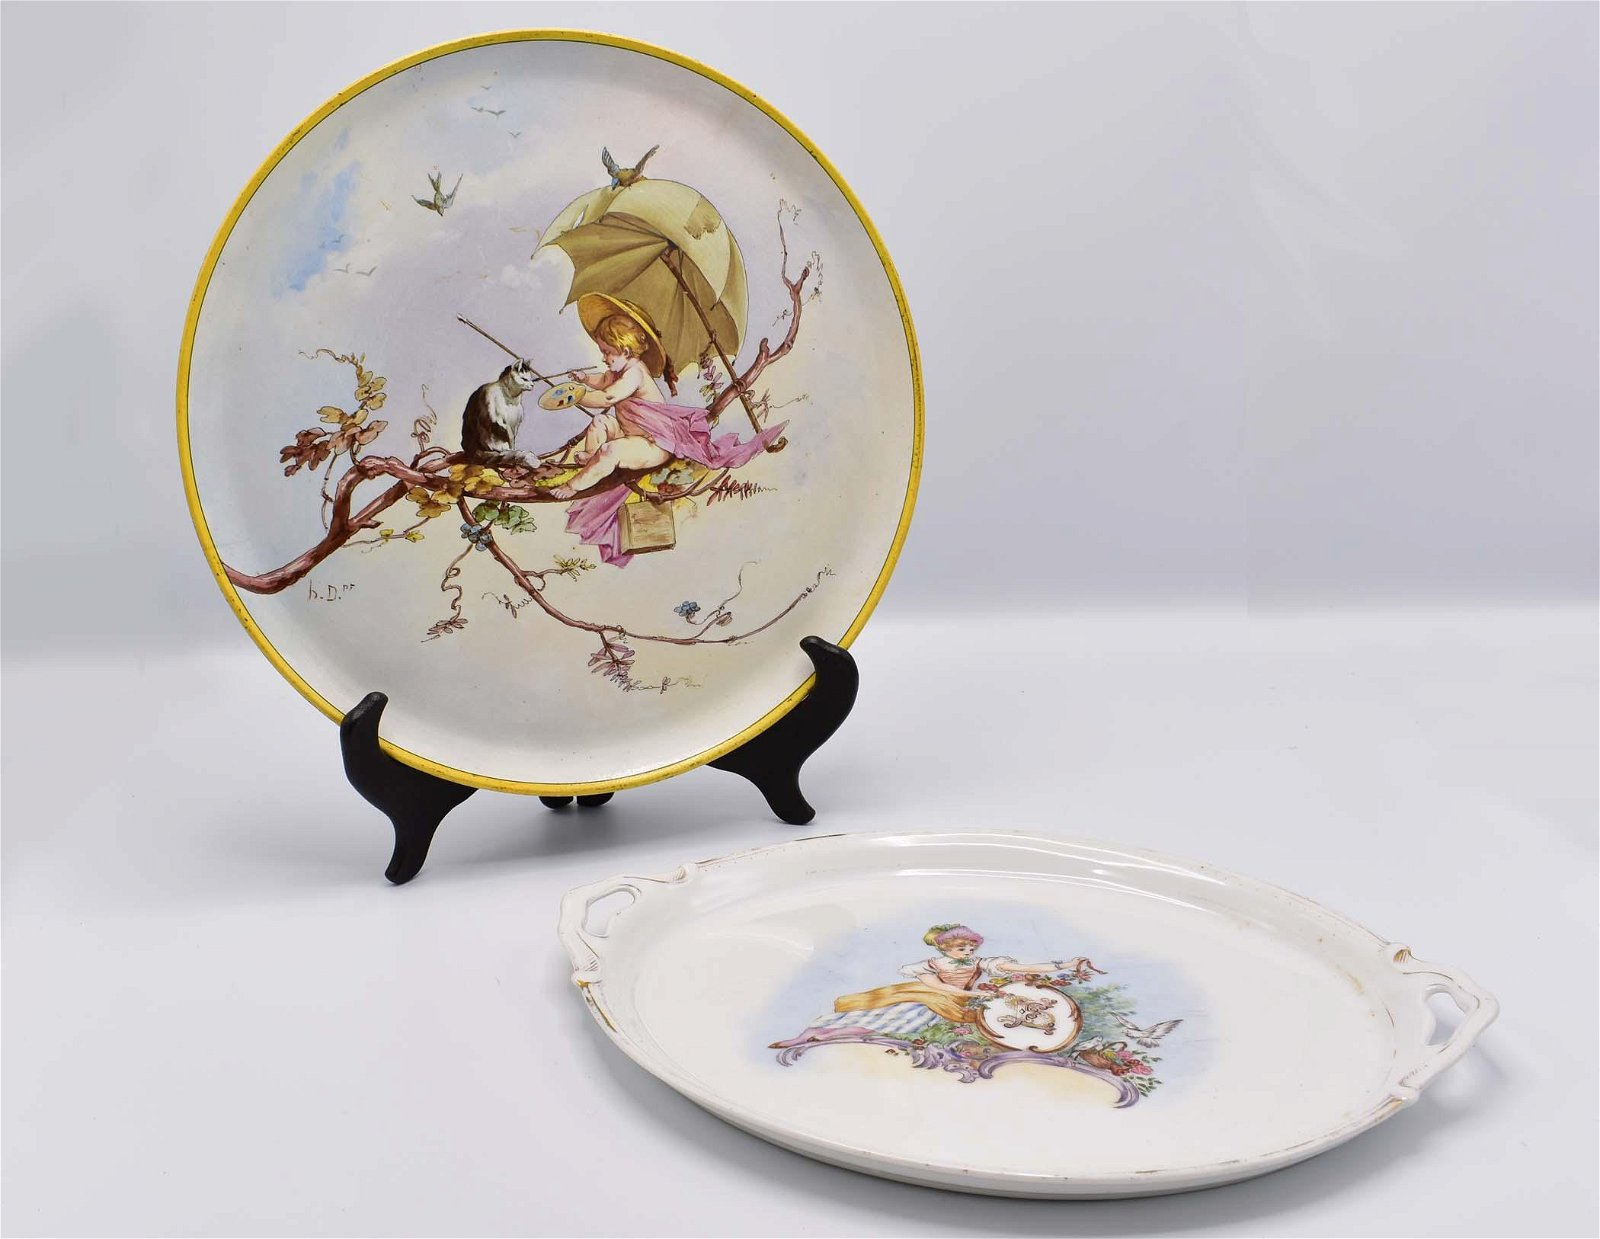 FRENCH FAIENCE PLATTER AND A PORCELAIN  PLATTER